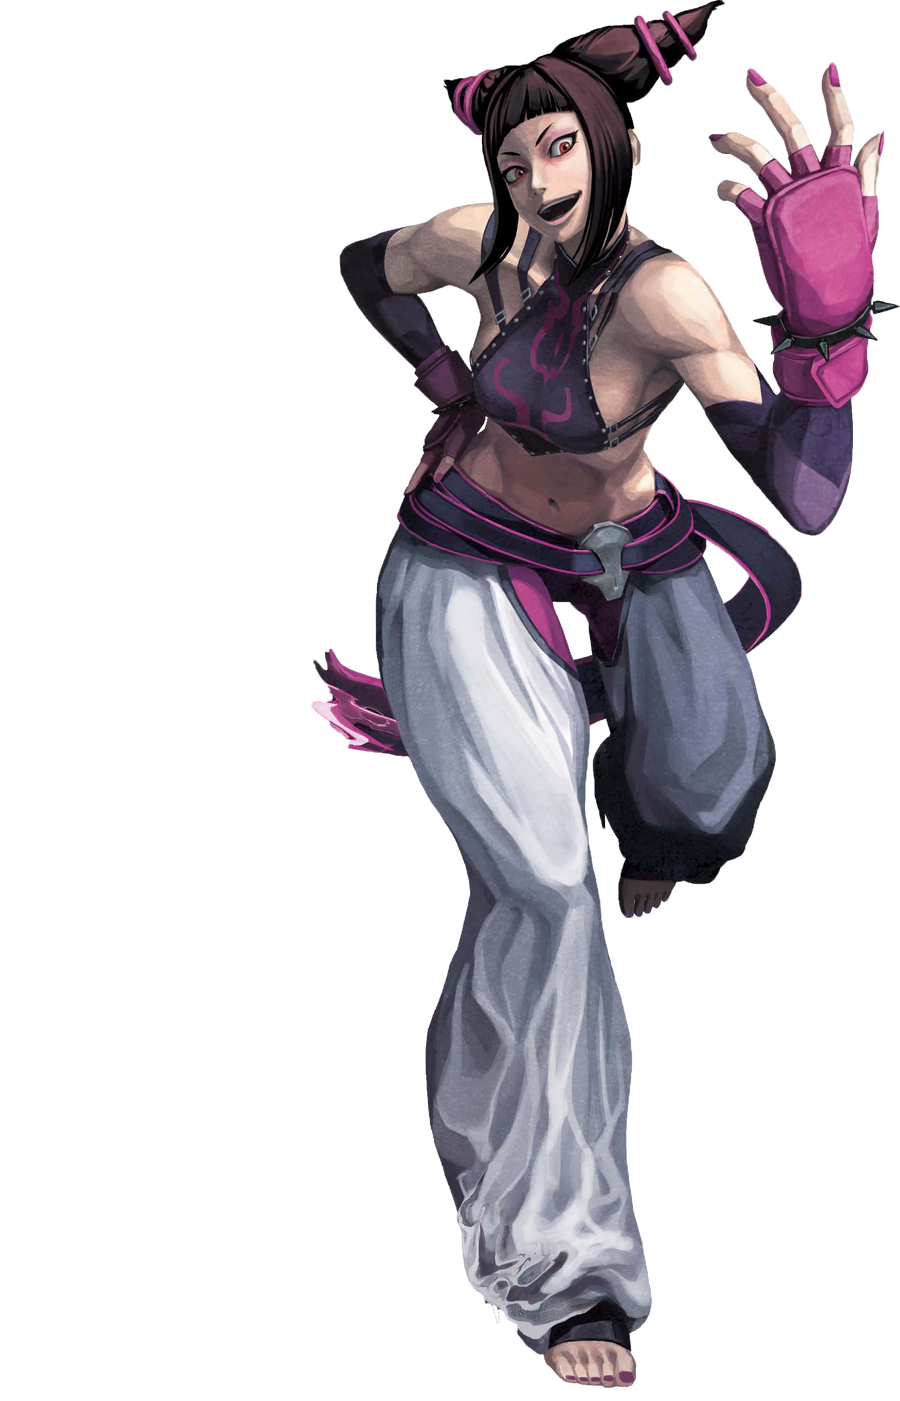 Kit - Juri [Cross] Juri_street_fighter_x_tekken_render_by_akatsukiakuma53421-d4n8149